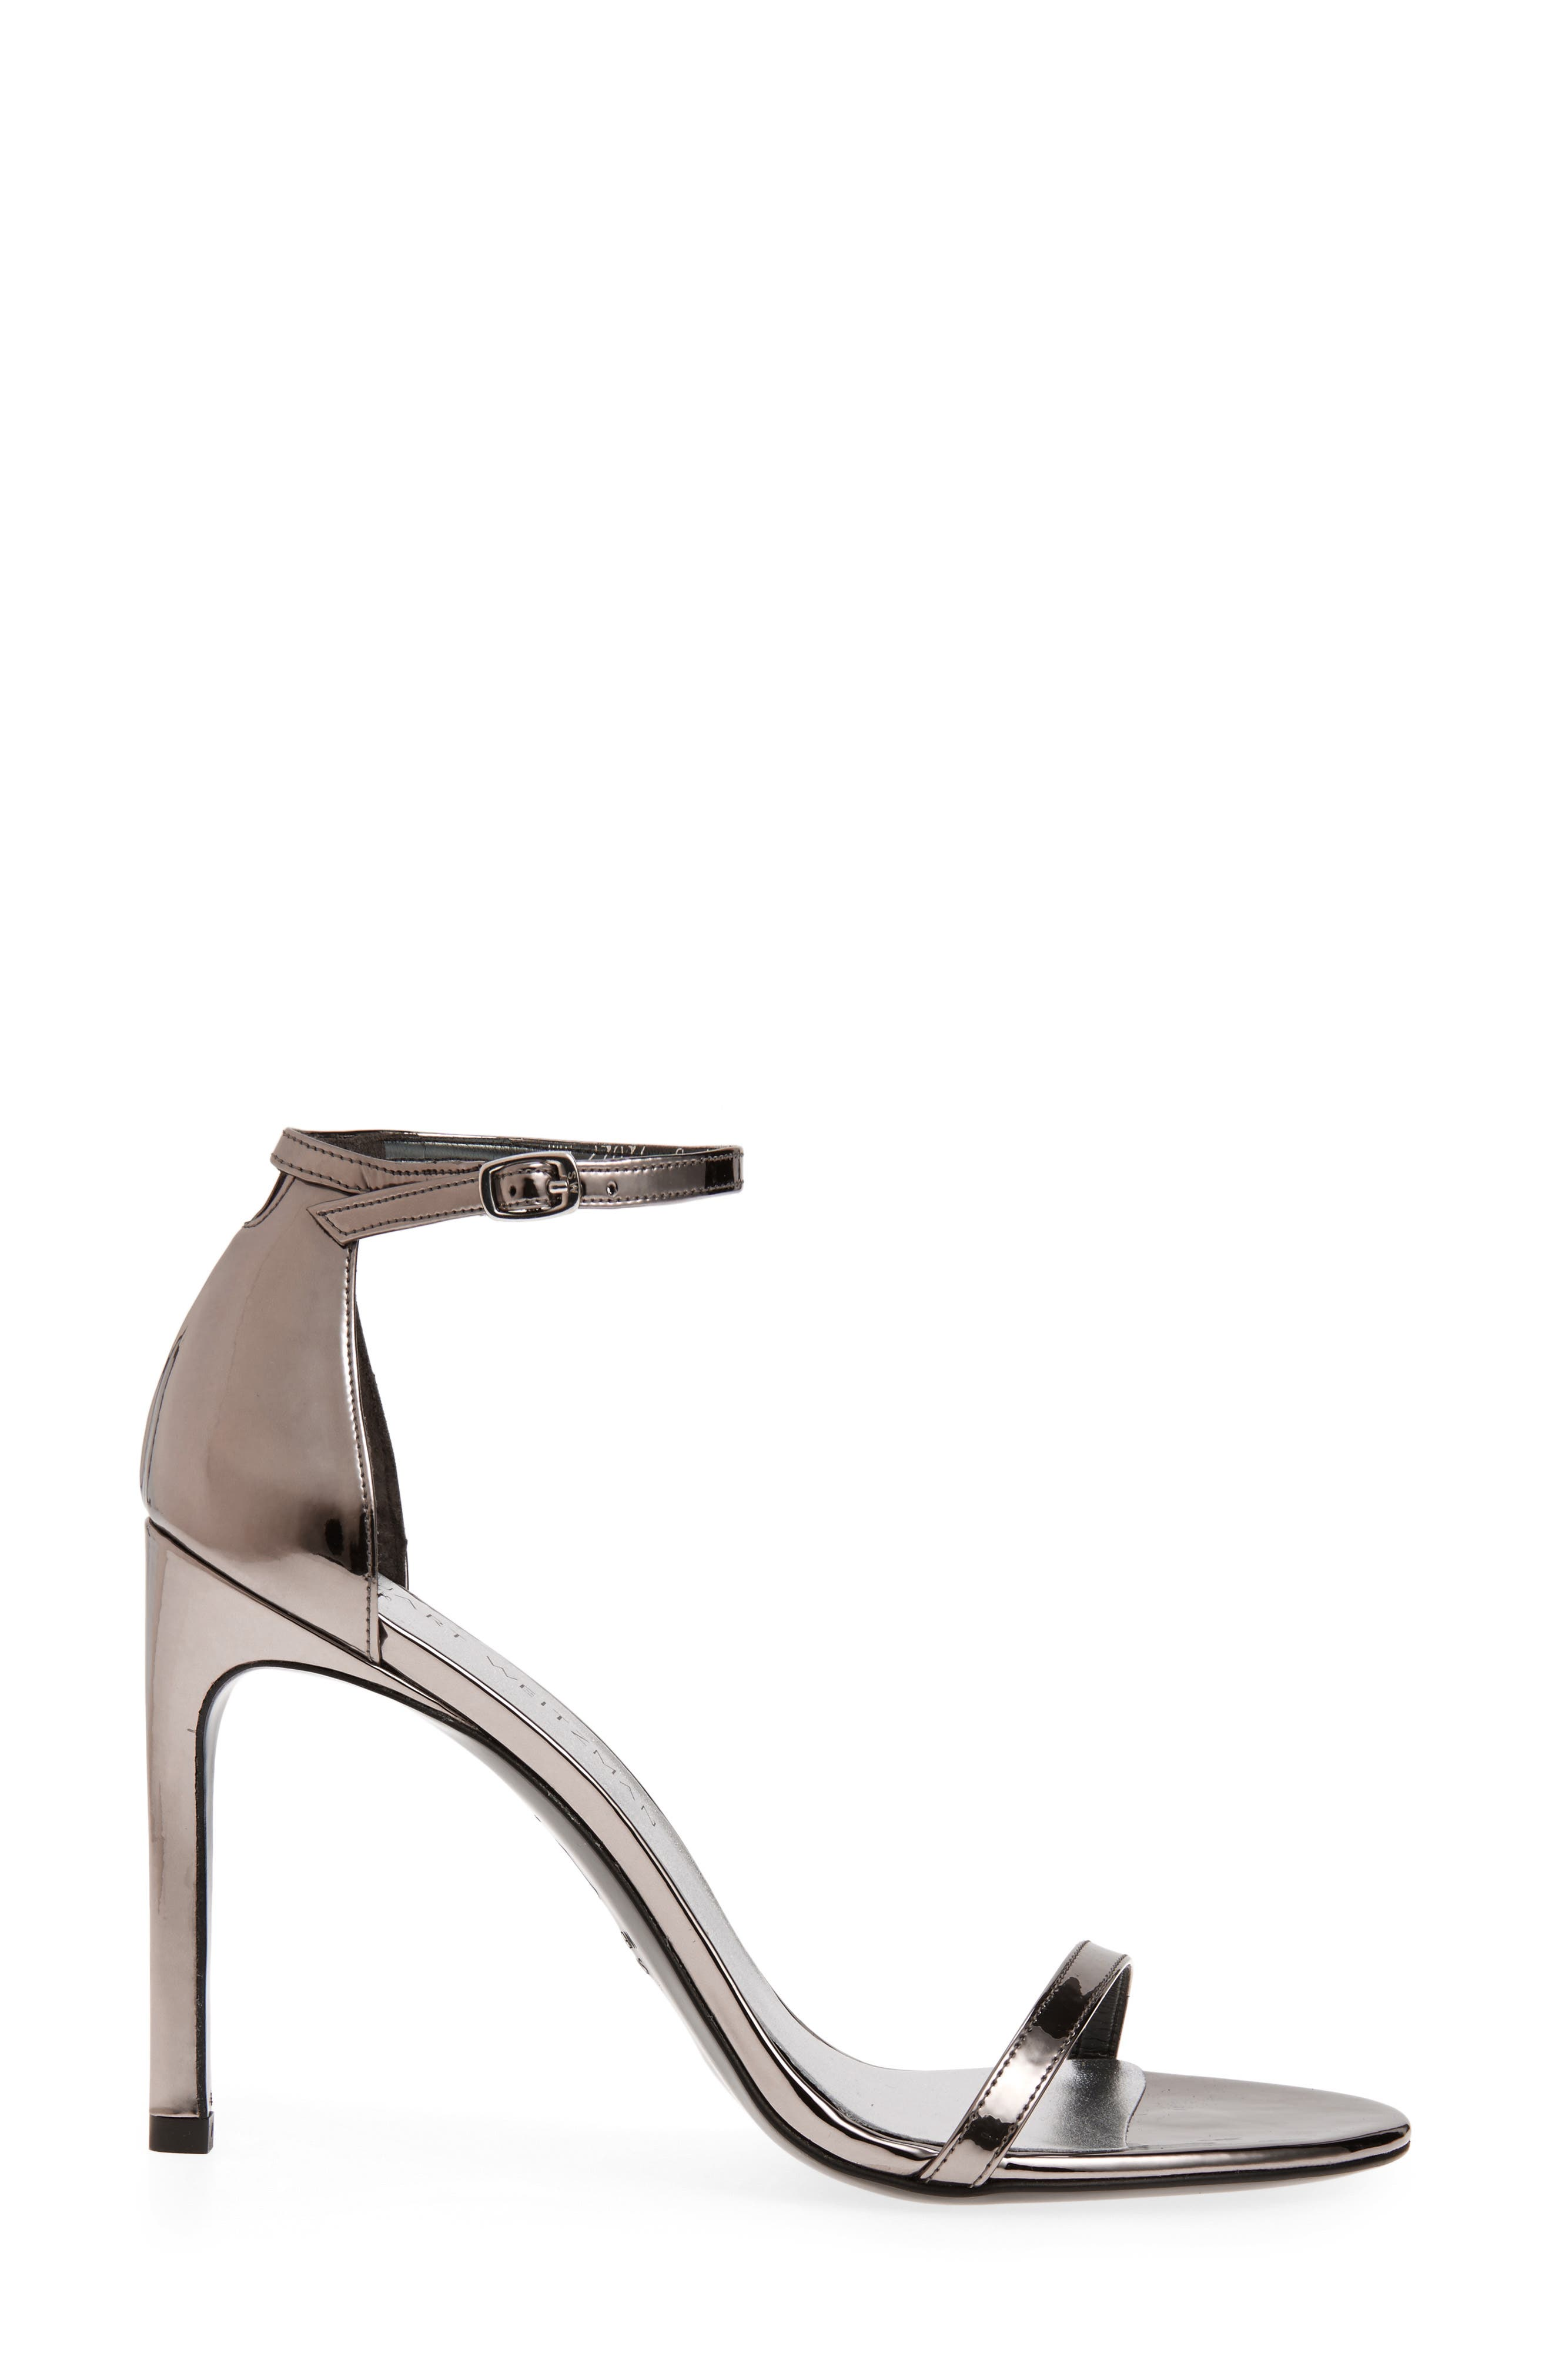 Nudistsong Ankle Strap Sandal,                             Alternate thumbnail 3, color,                             PEWTER GLASS